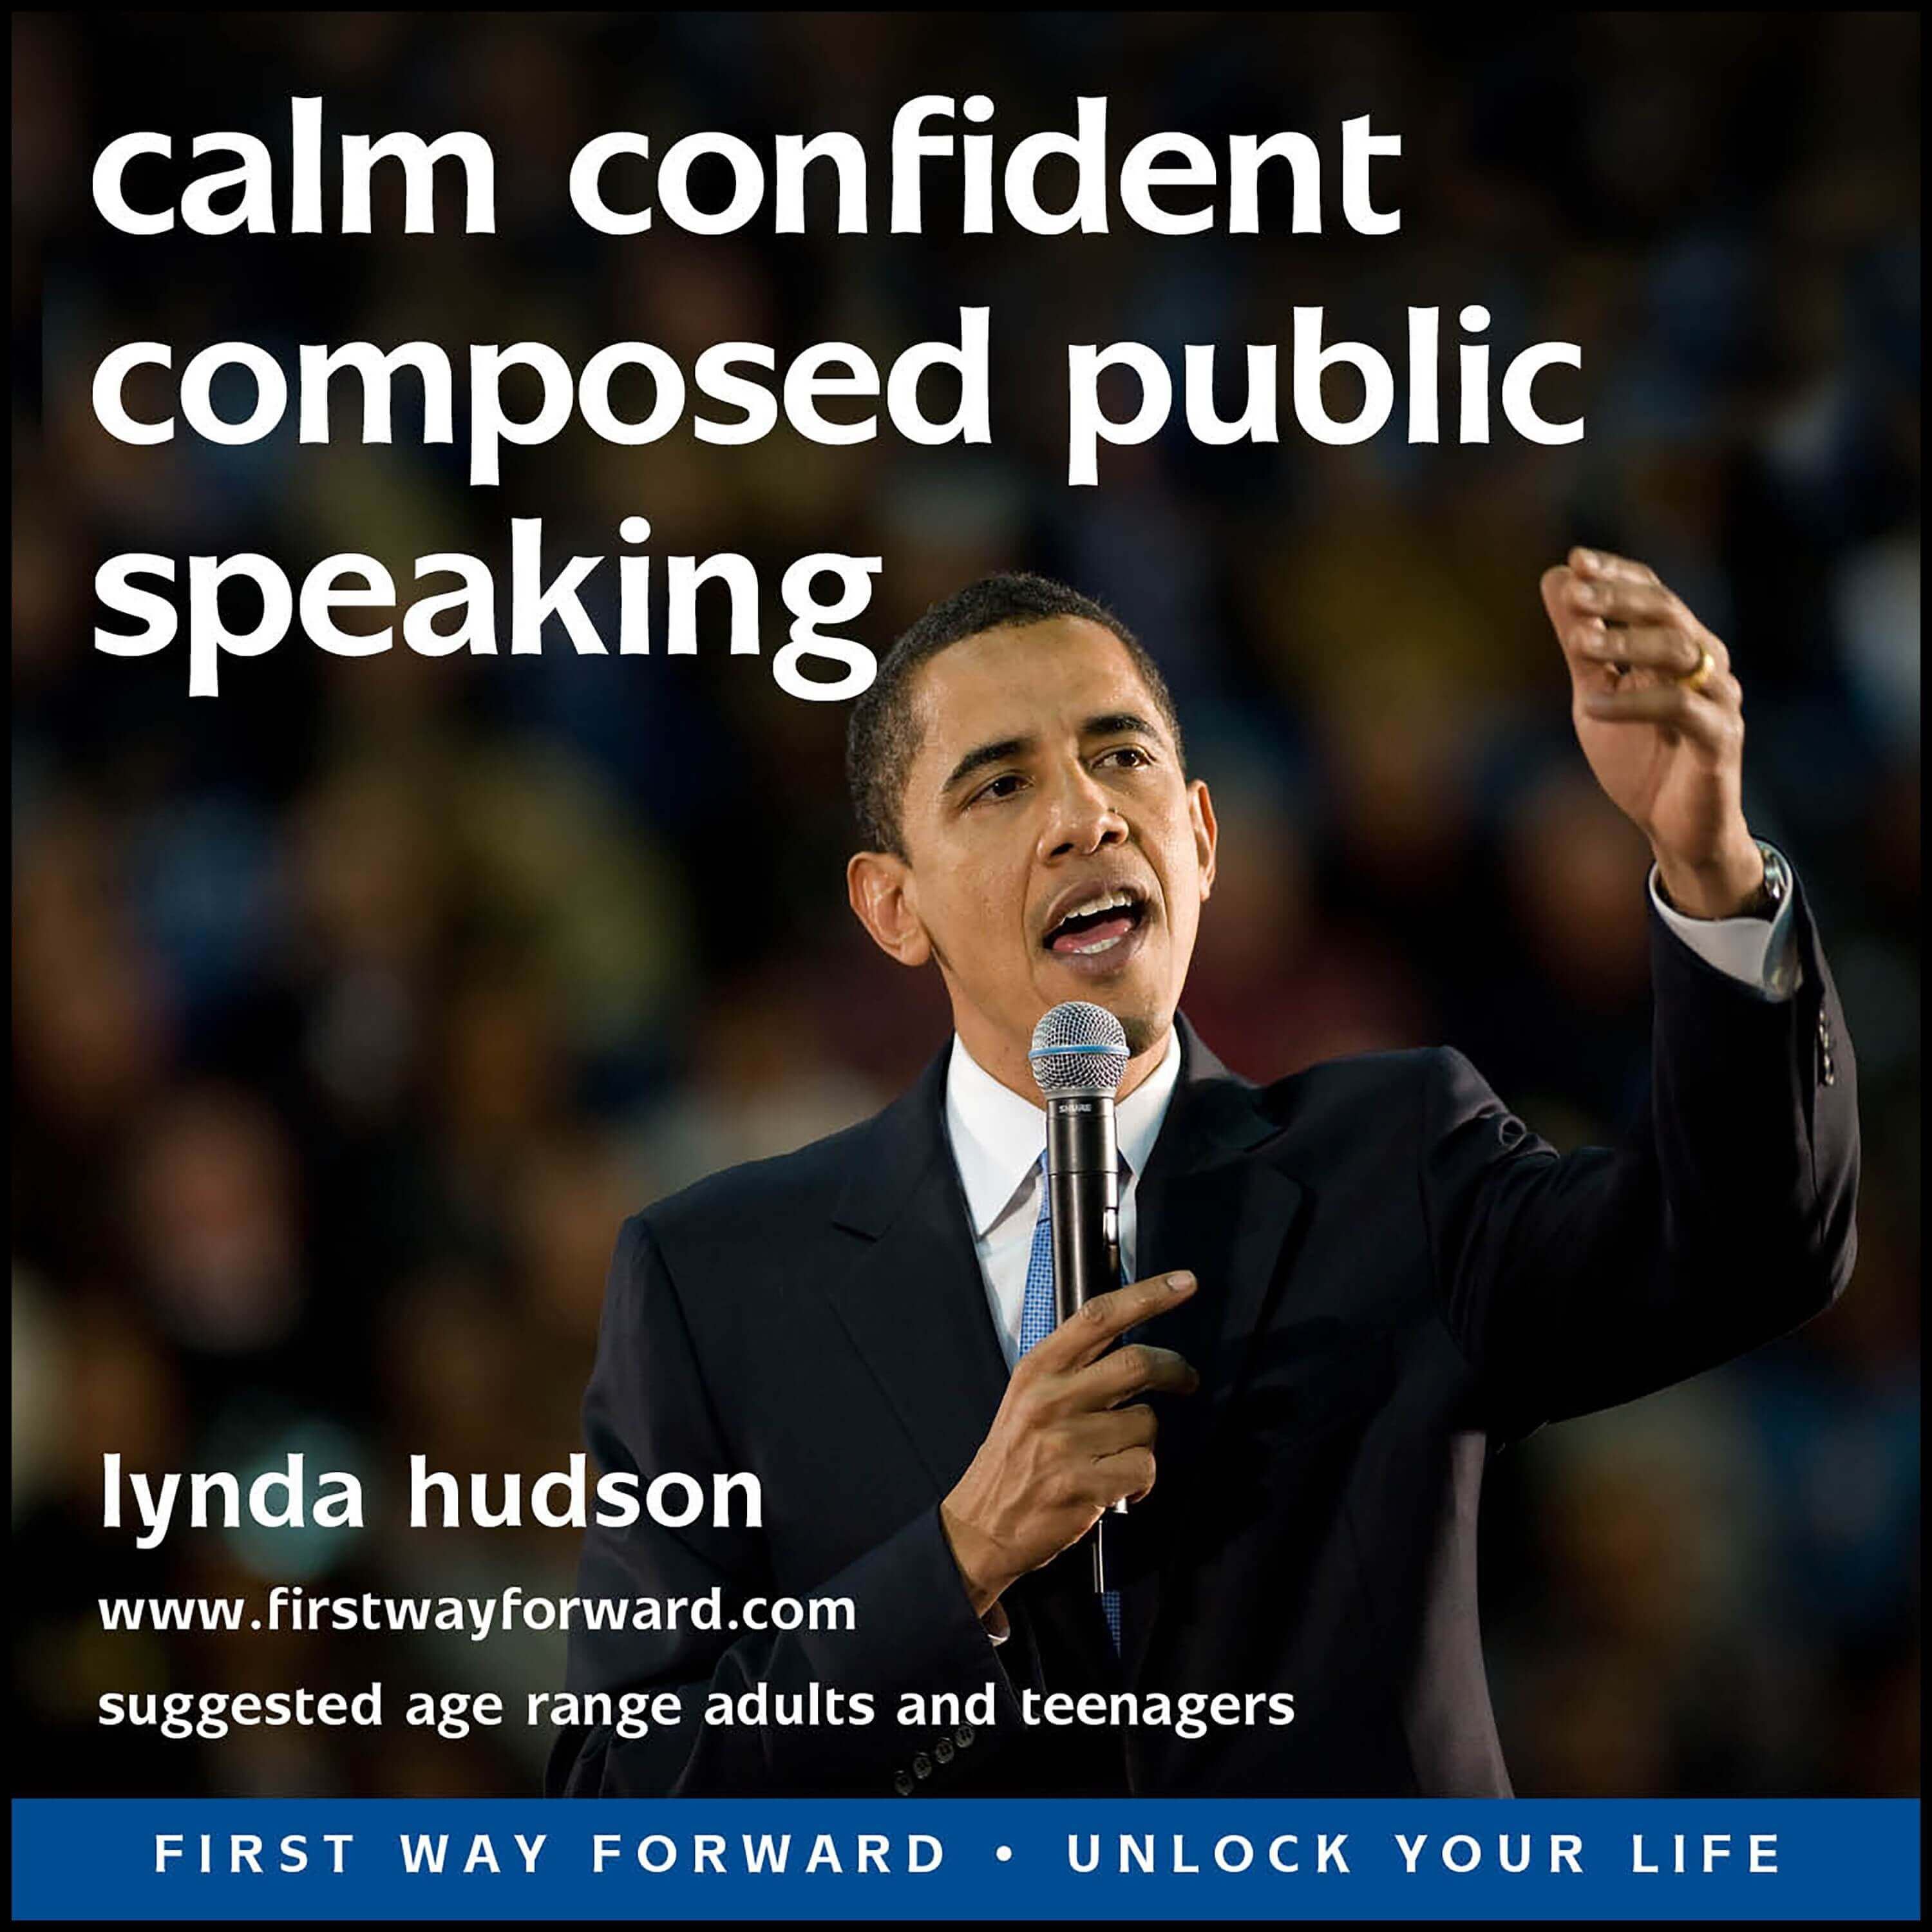 Calm, confident composed public speaking